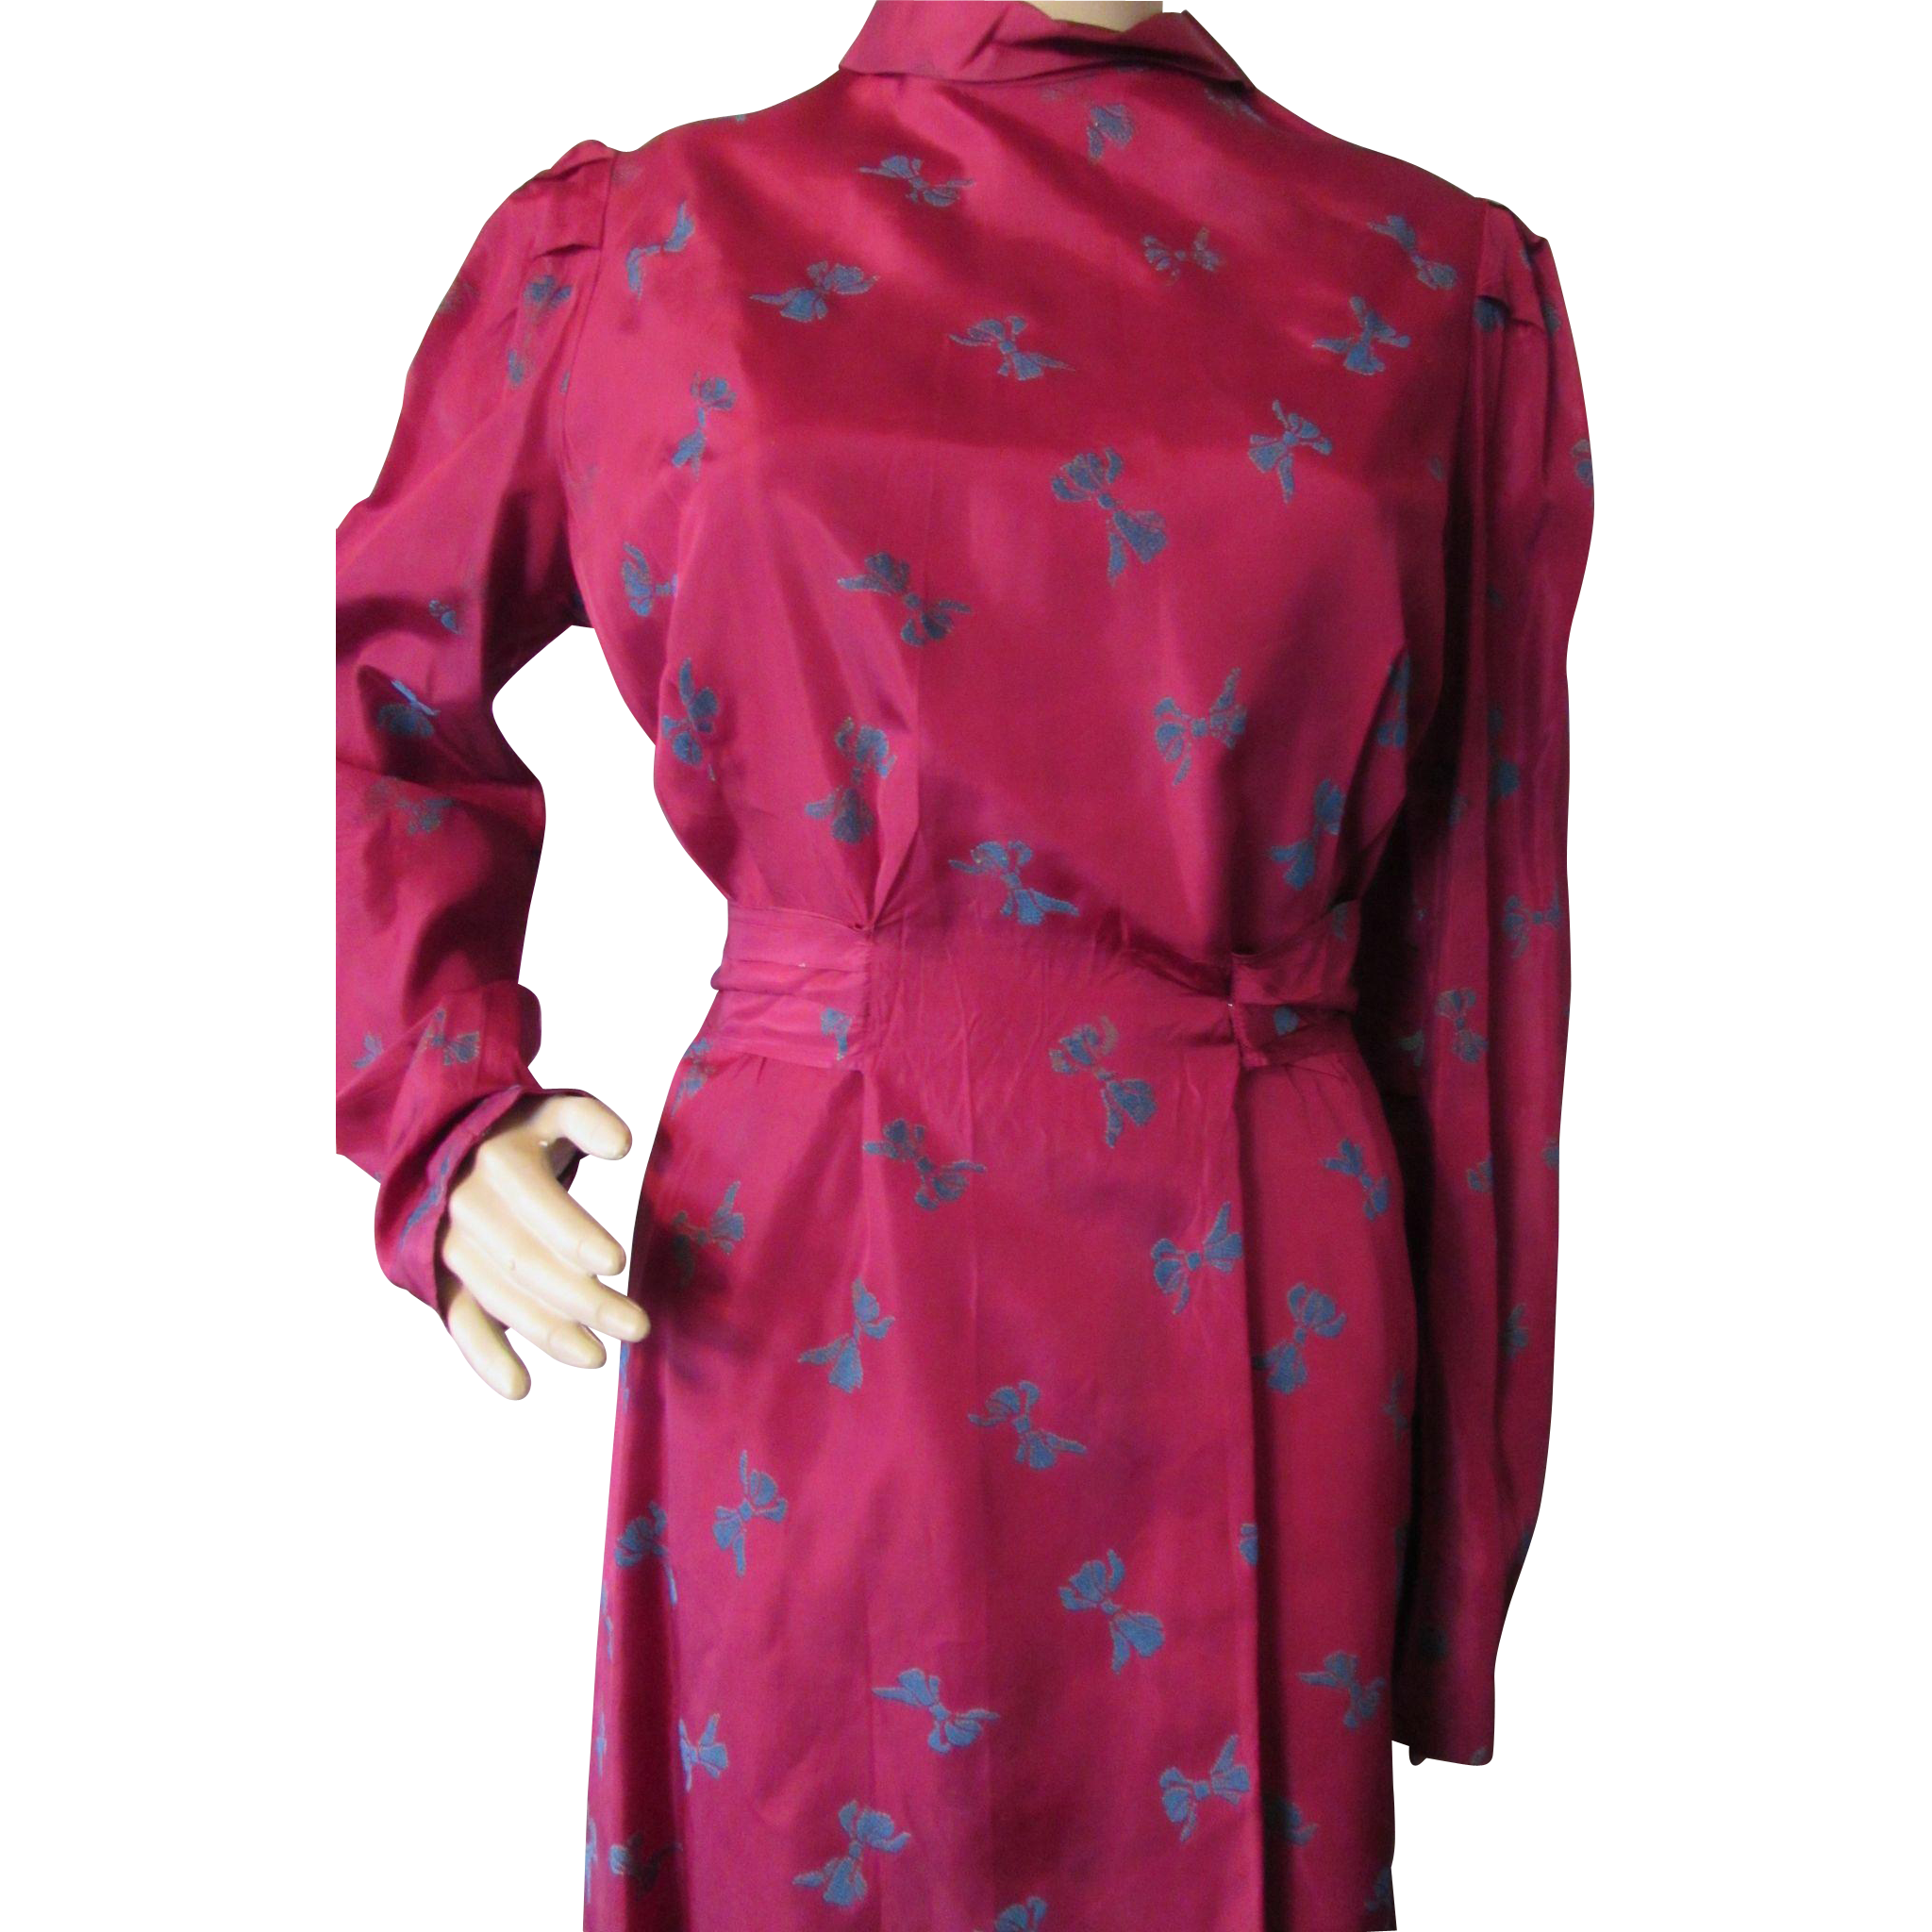 Two Piece 1940 Era Dress in Rose Taffeta by Maisonette Frocks Ward Stillson Anderson